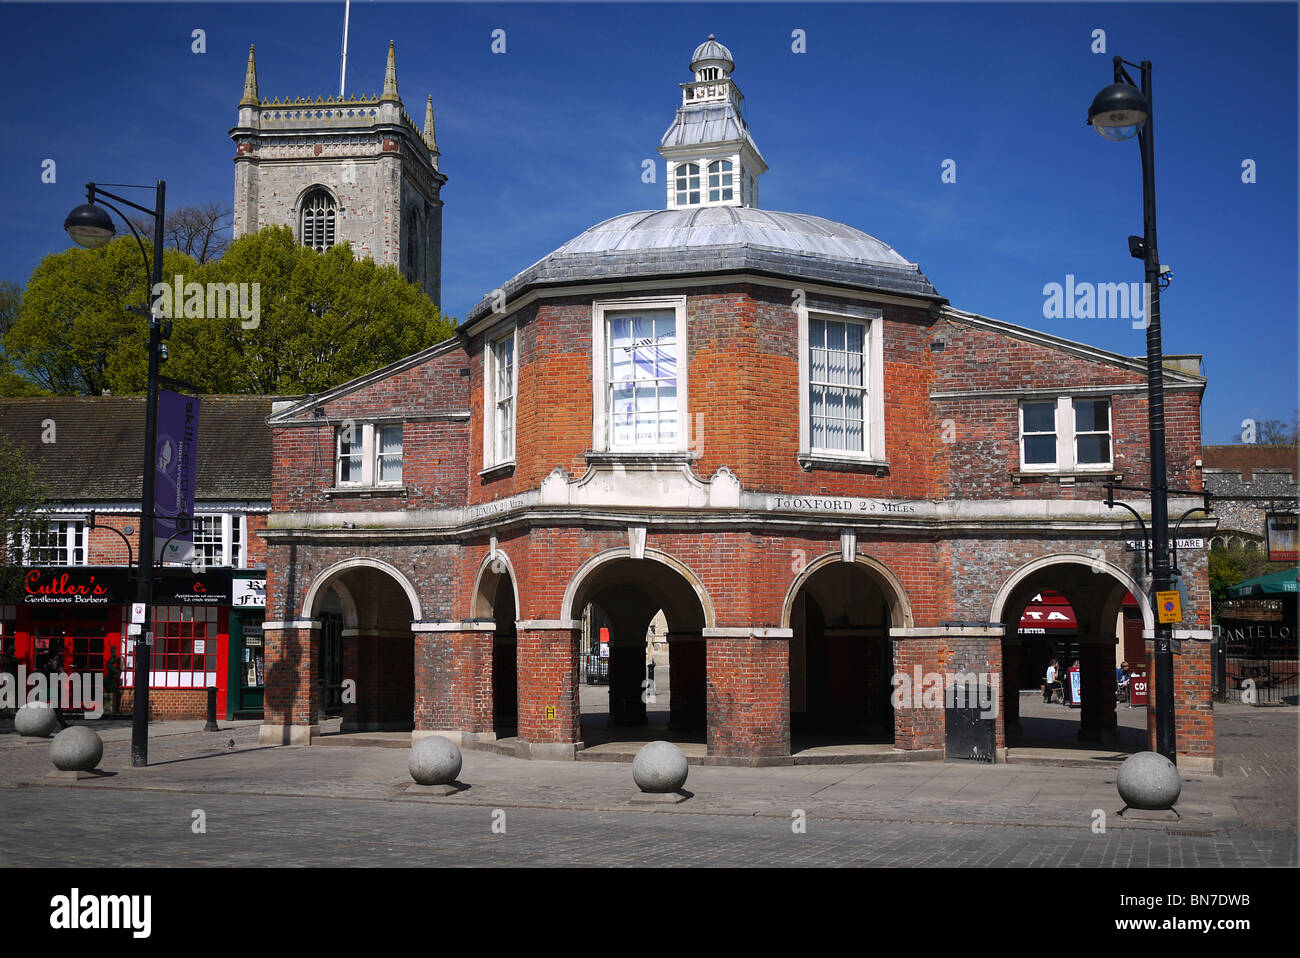 High Wycombe town centre The Market House, Market Square, High Wycombe, - Stock Image